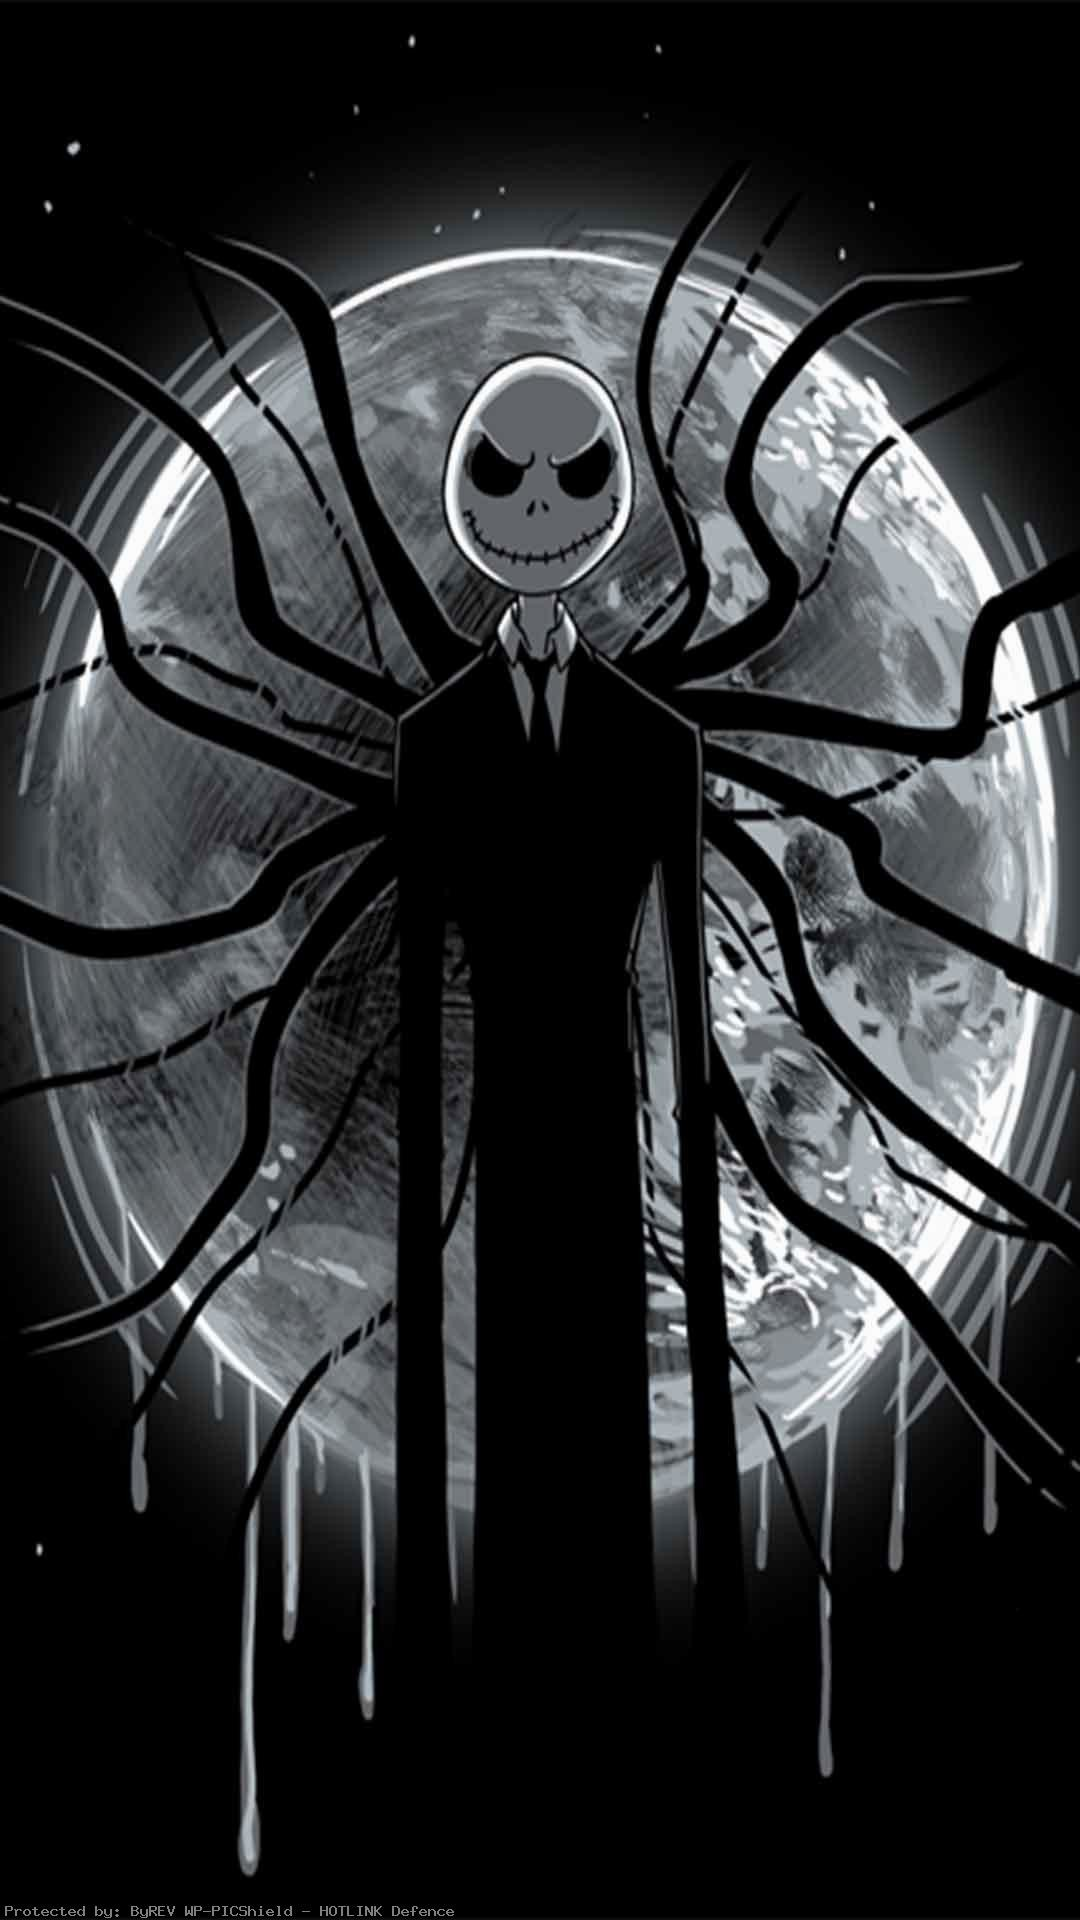 Iphone X Parallax Live Wallpaper Nightmare Before Christmas Iphone Wallpaper 66 Images